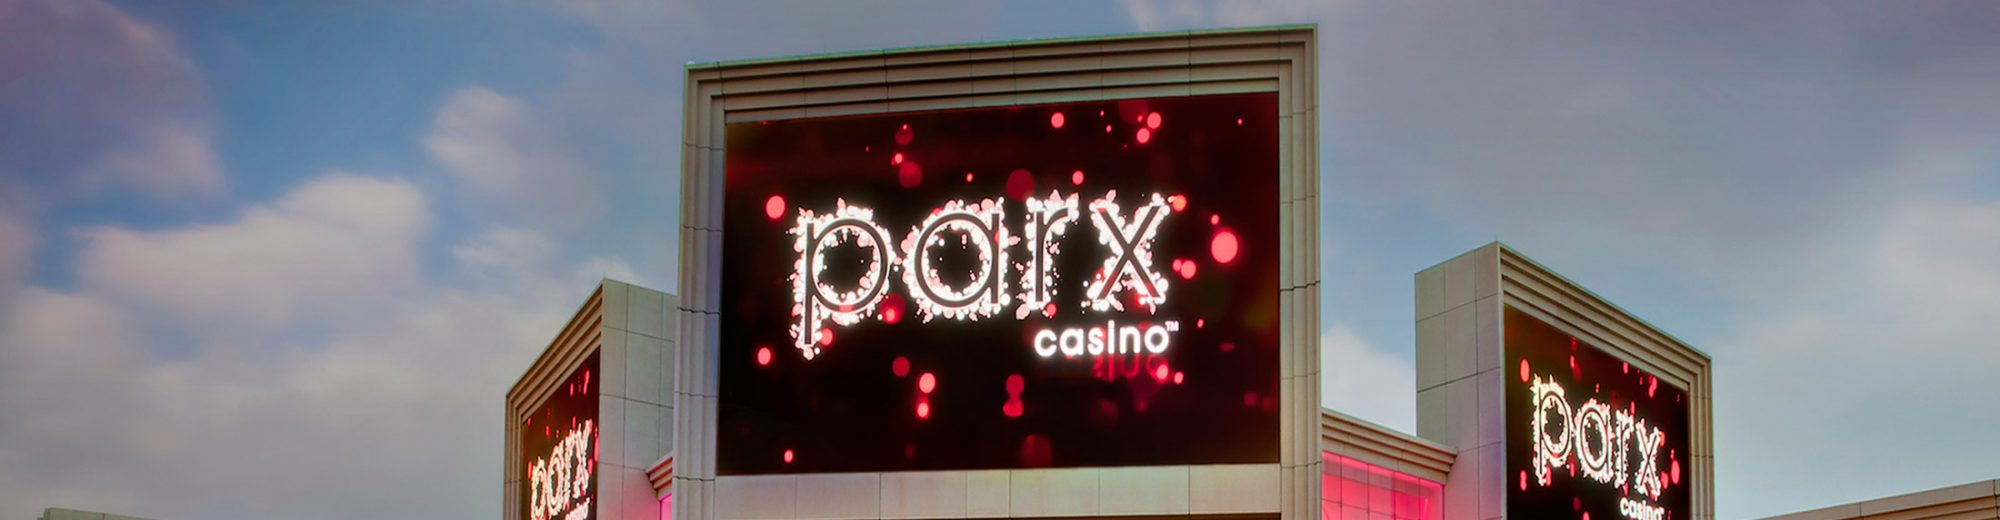 Parx Casino Best Casino And Best Free Slots For You